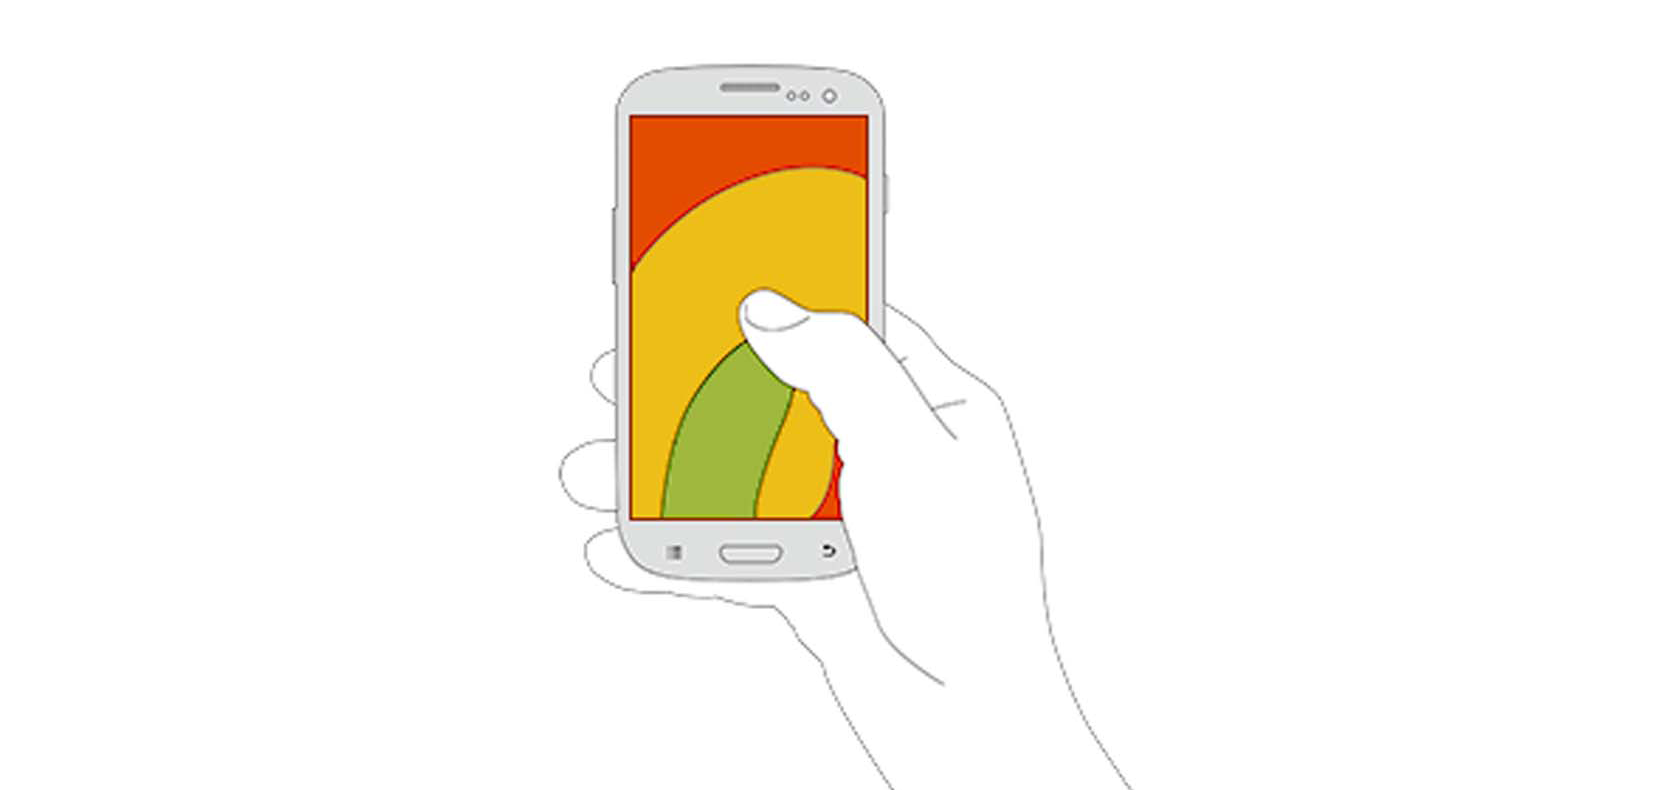 The thumb swipe zone on mobile devices affecting mobile usability